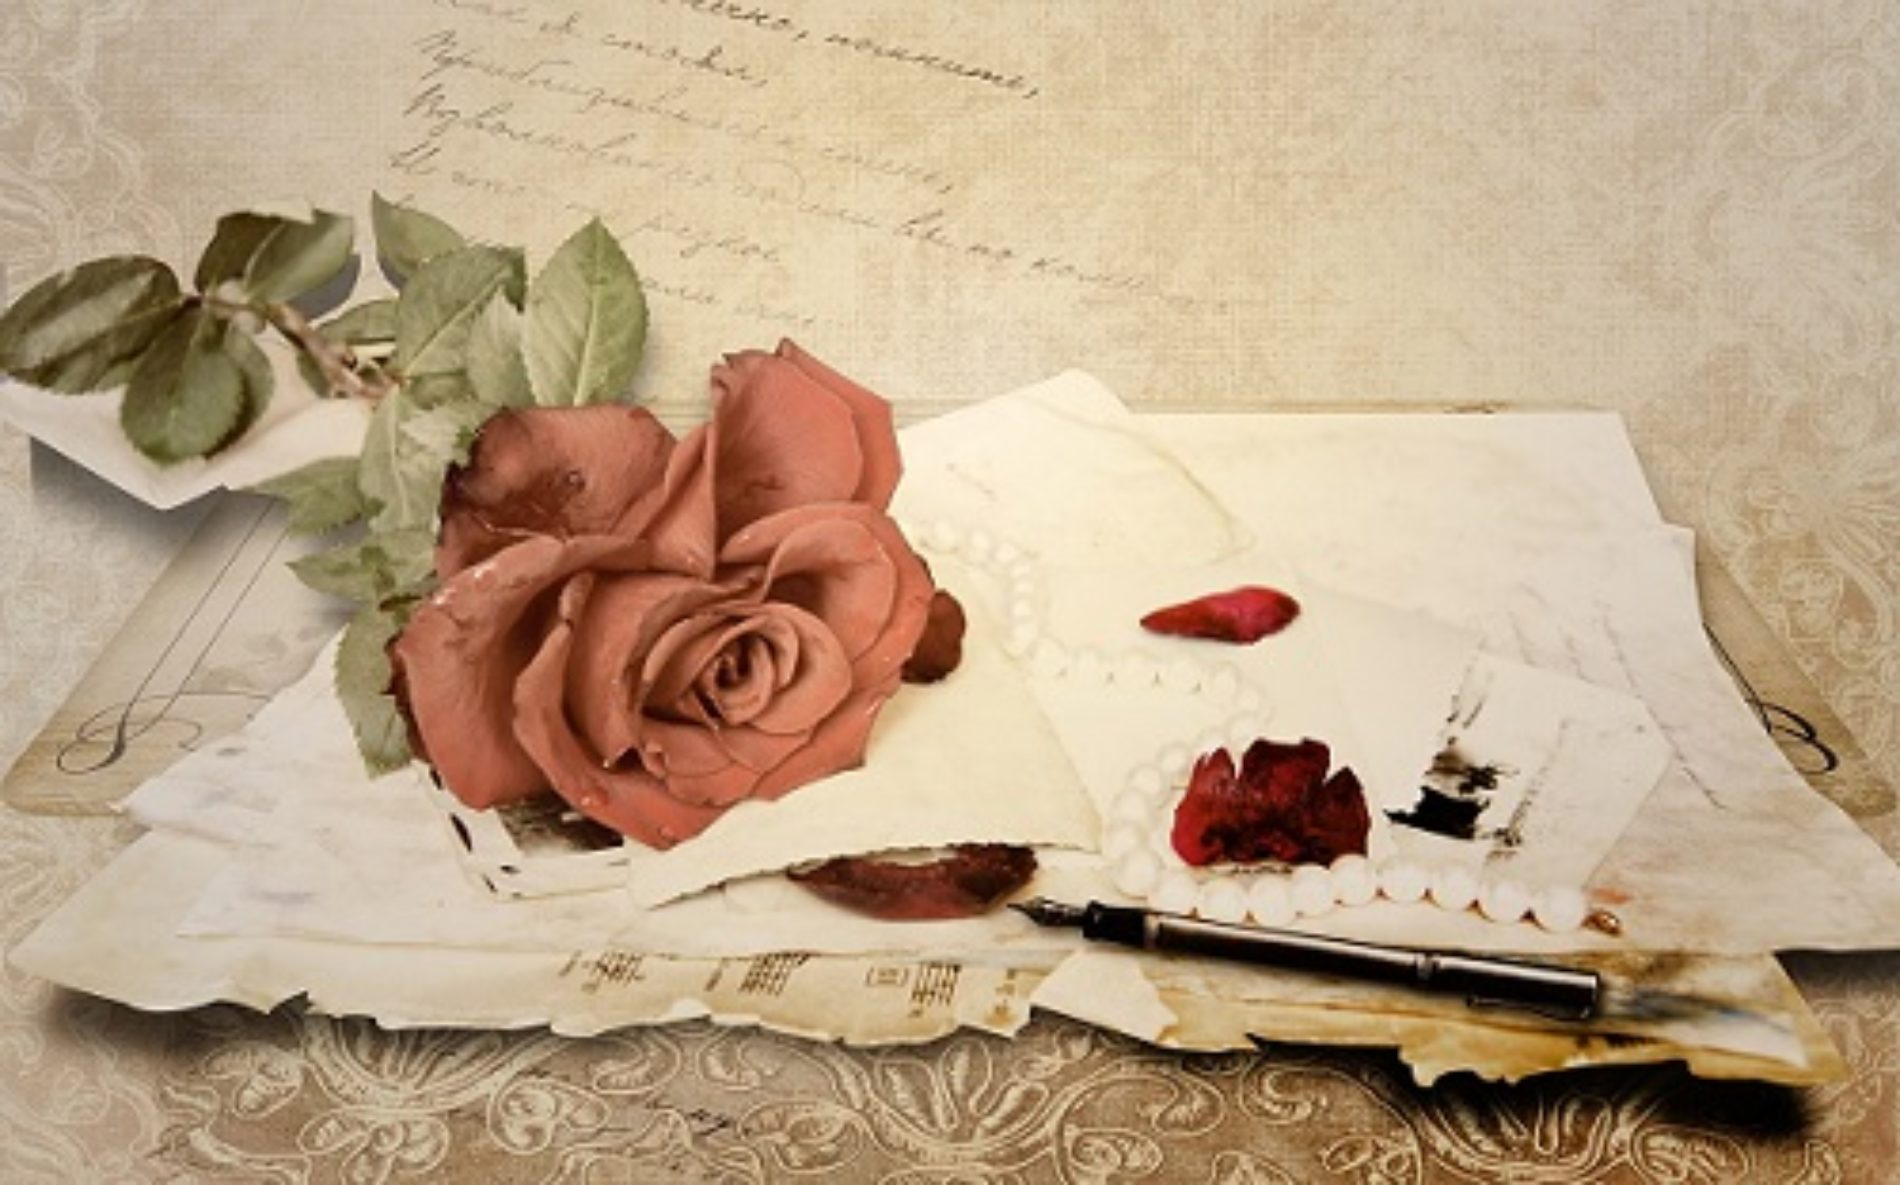 THE OPEN LOVE LETTERS